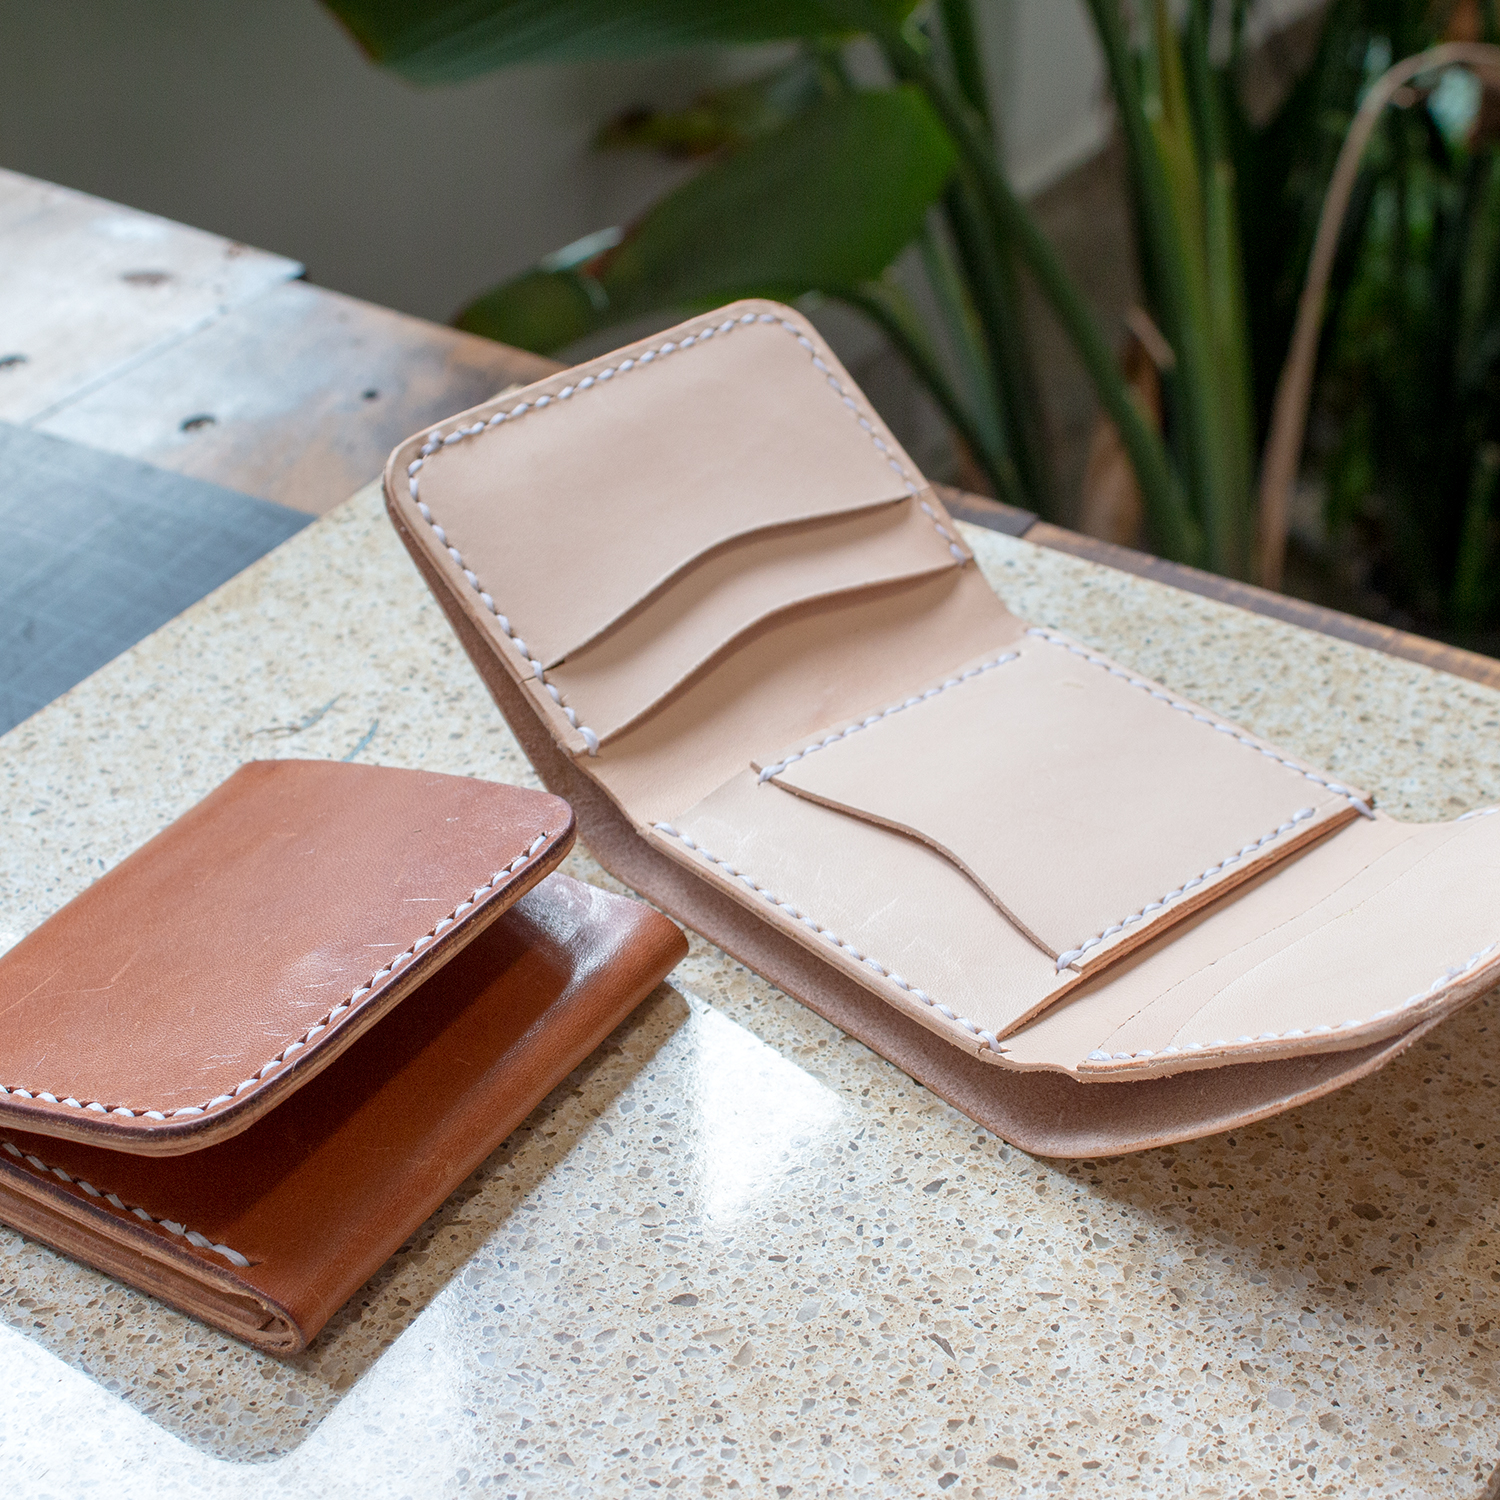 Long biker wallet leather patternleather template with instruction